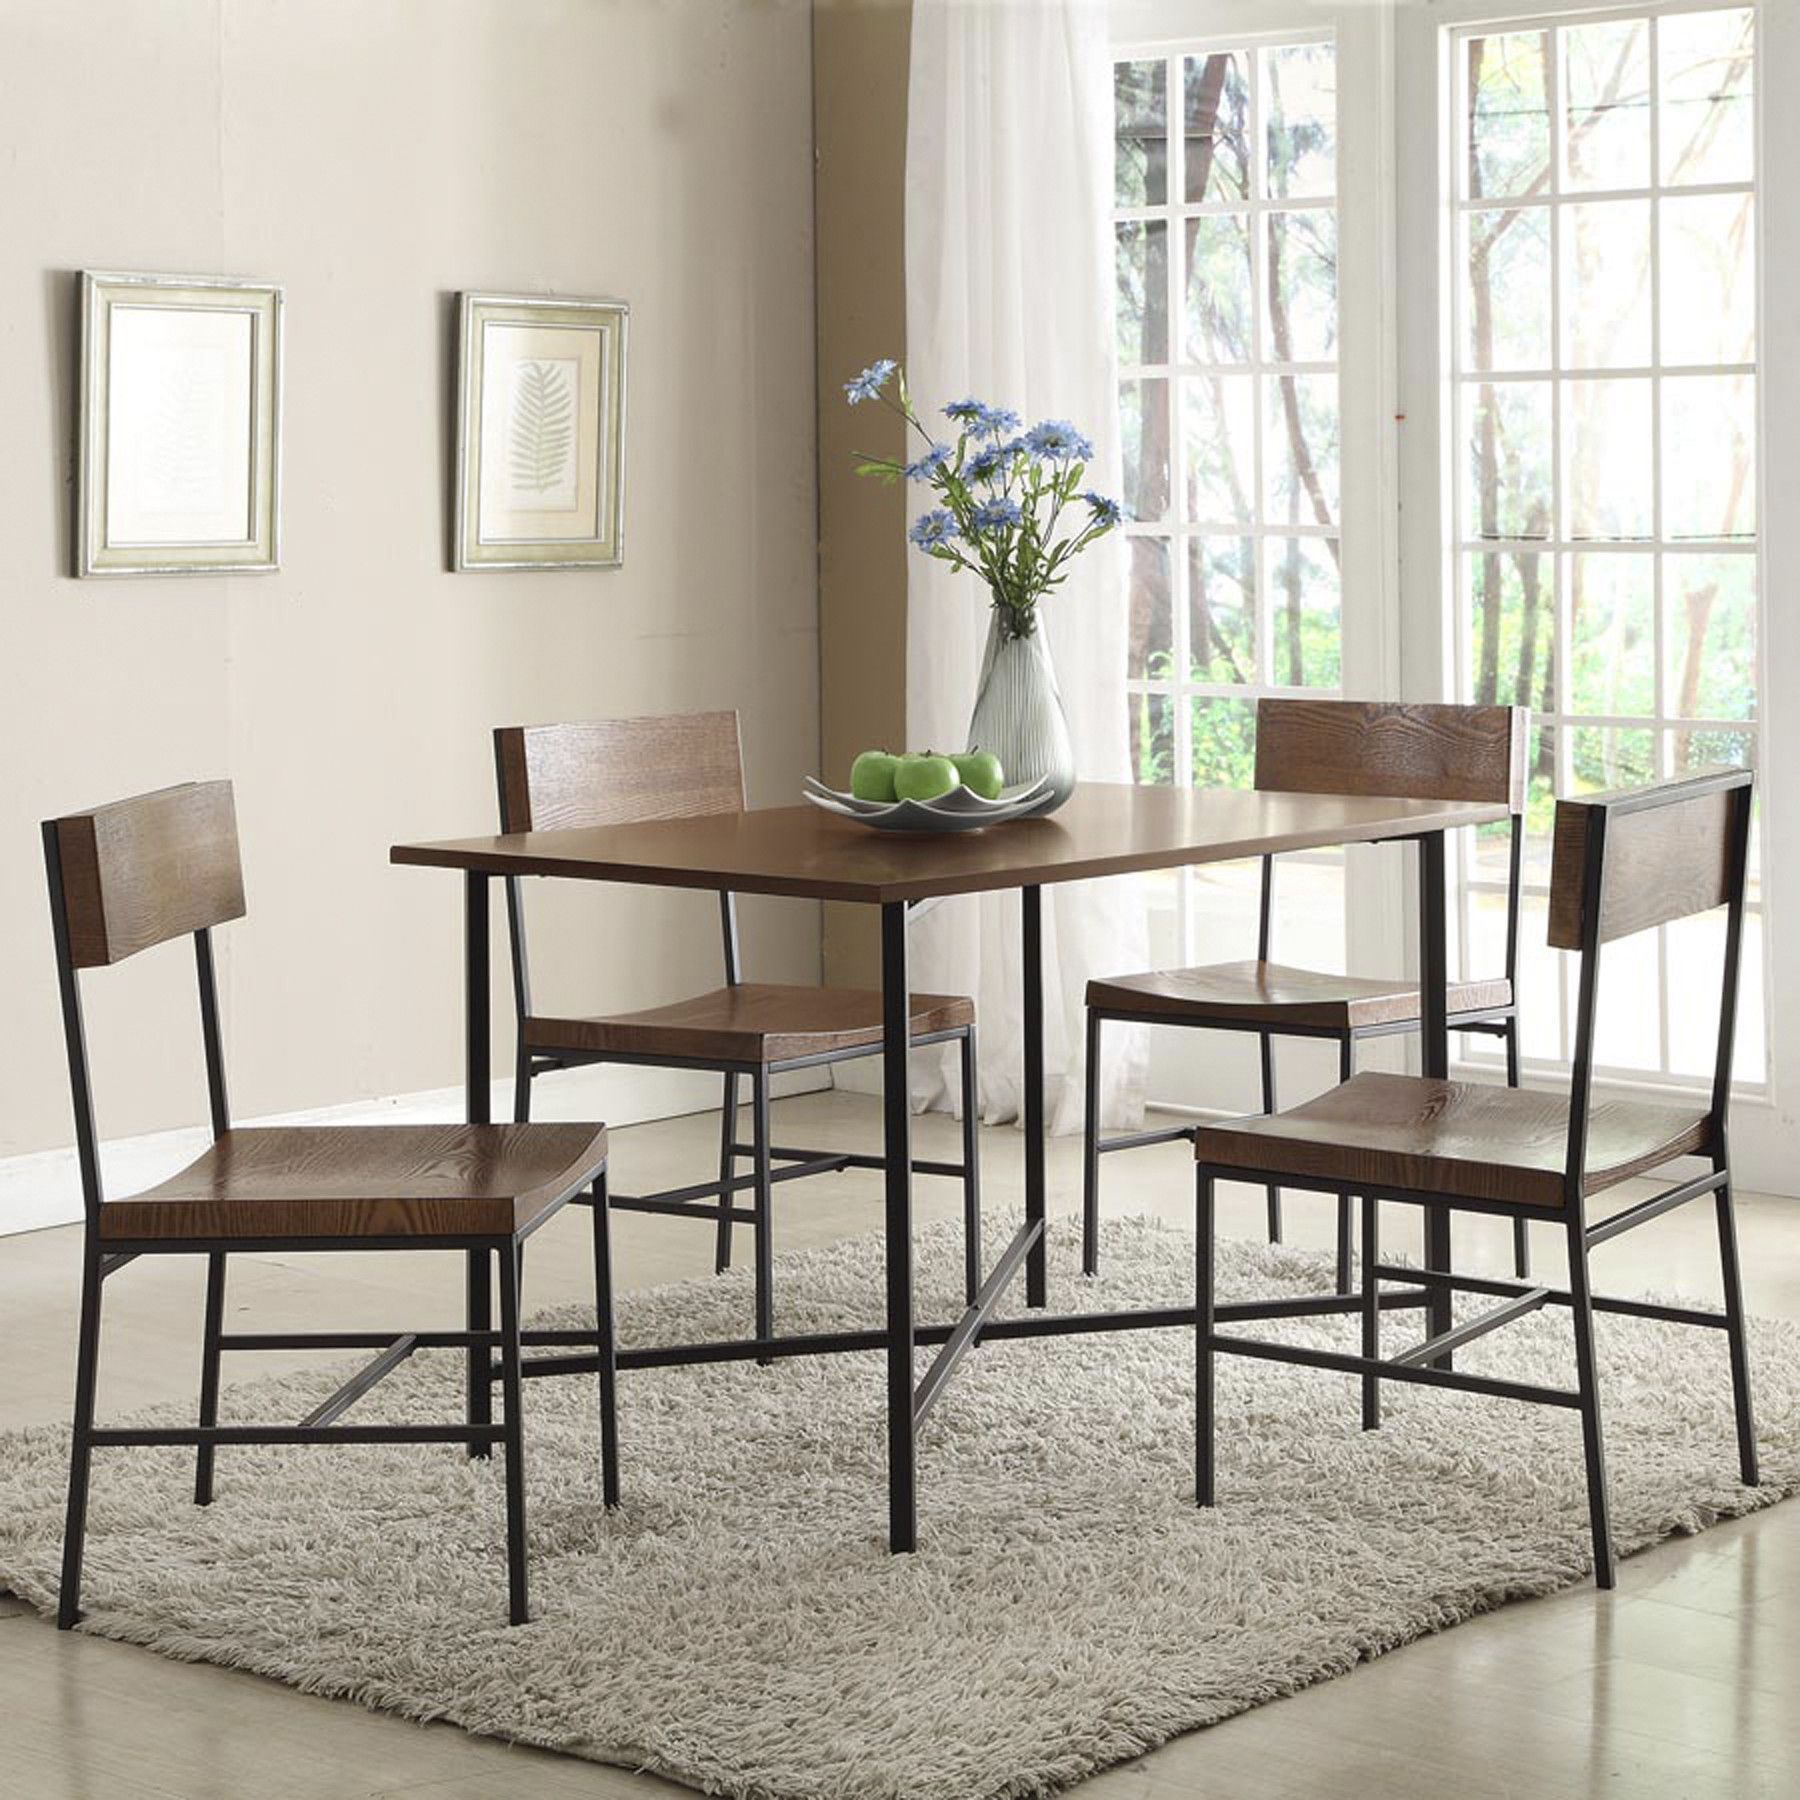 otto dining table products rh pinterest de